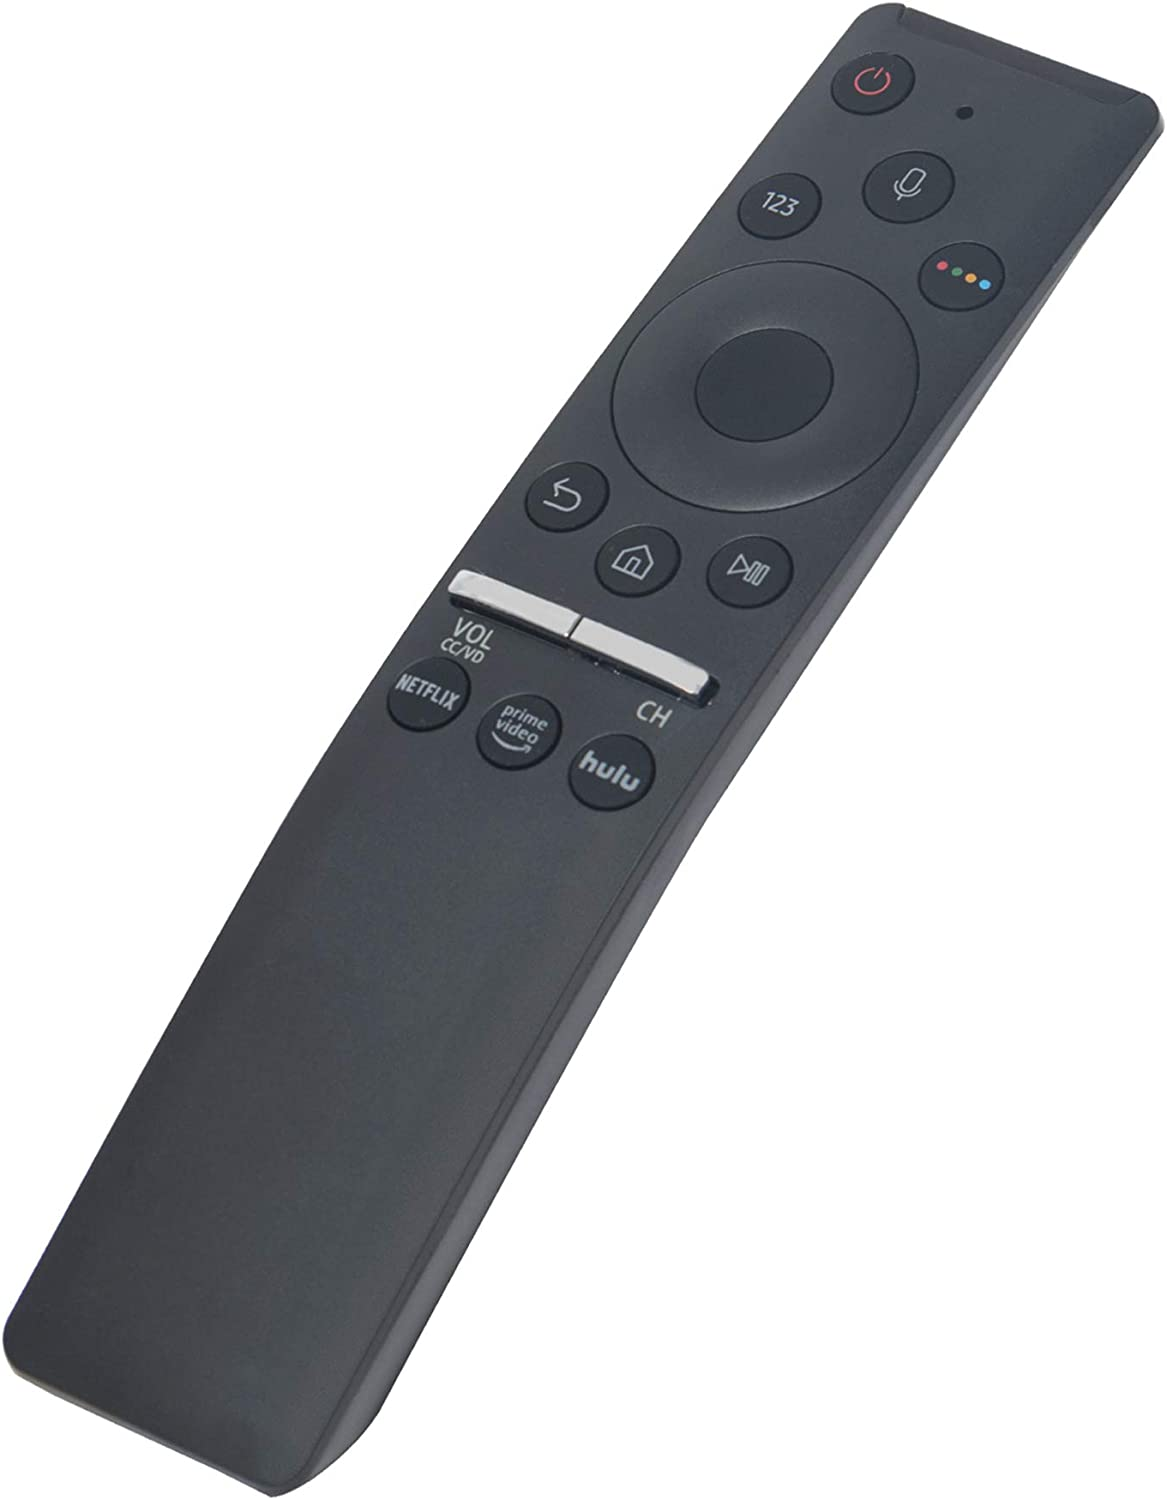 BN59-01312G Replaced Voice Remote fit for Samsung TV UN49RU8000F UN55RU740DF UN55RU8000F UN55RU800DF UN65RU740DF UN65RU8000F UN65RU800DF UN75RU8000F UN75RU800DF UN82RU8000F UN82RU800DF UN49RU8000FXZA